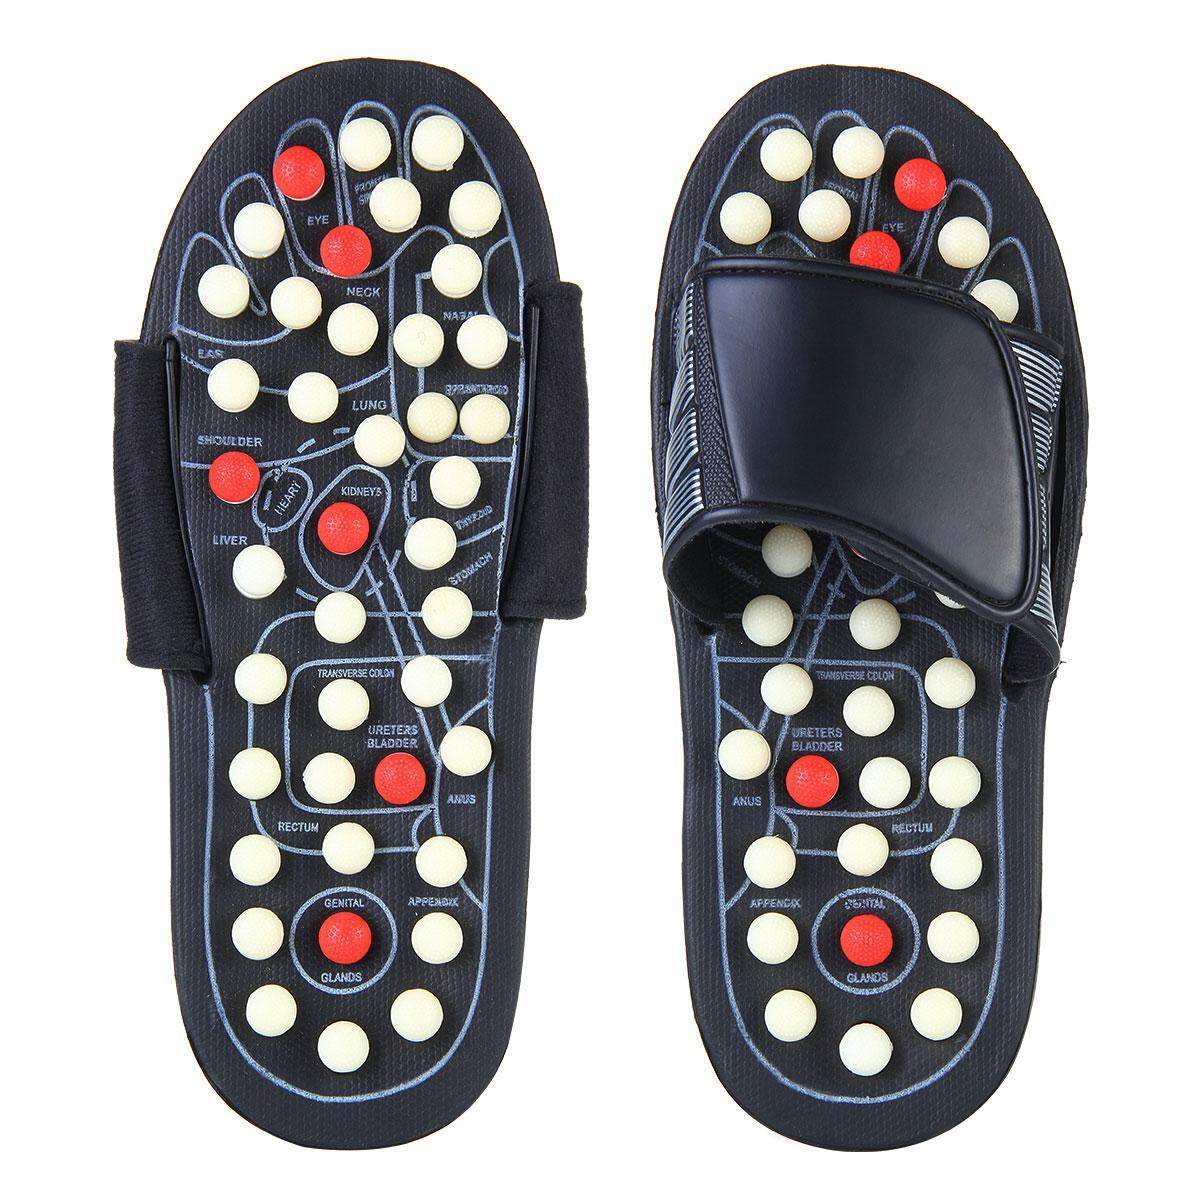 dfbeada8332 GoodGreat Foot Massage Slippers Revolving Polka-dot Acupoint Pedicures  Health Care Shoes